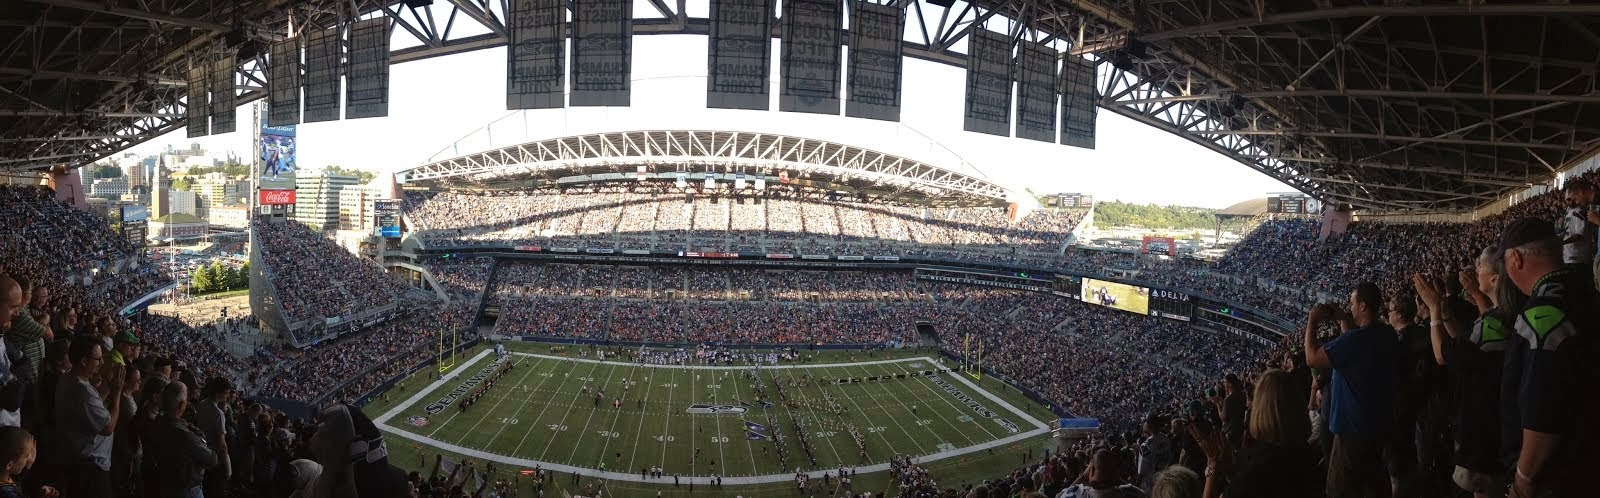 Century Link Field, Seattle WA